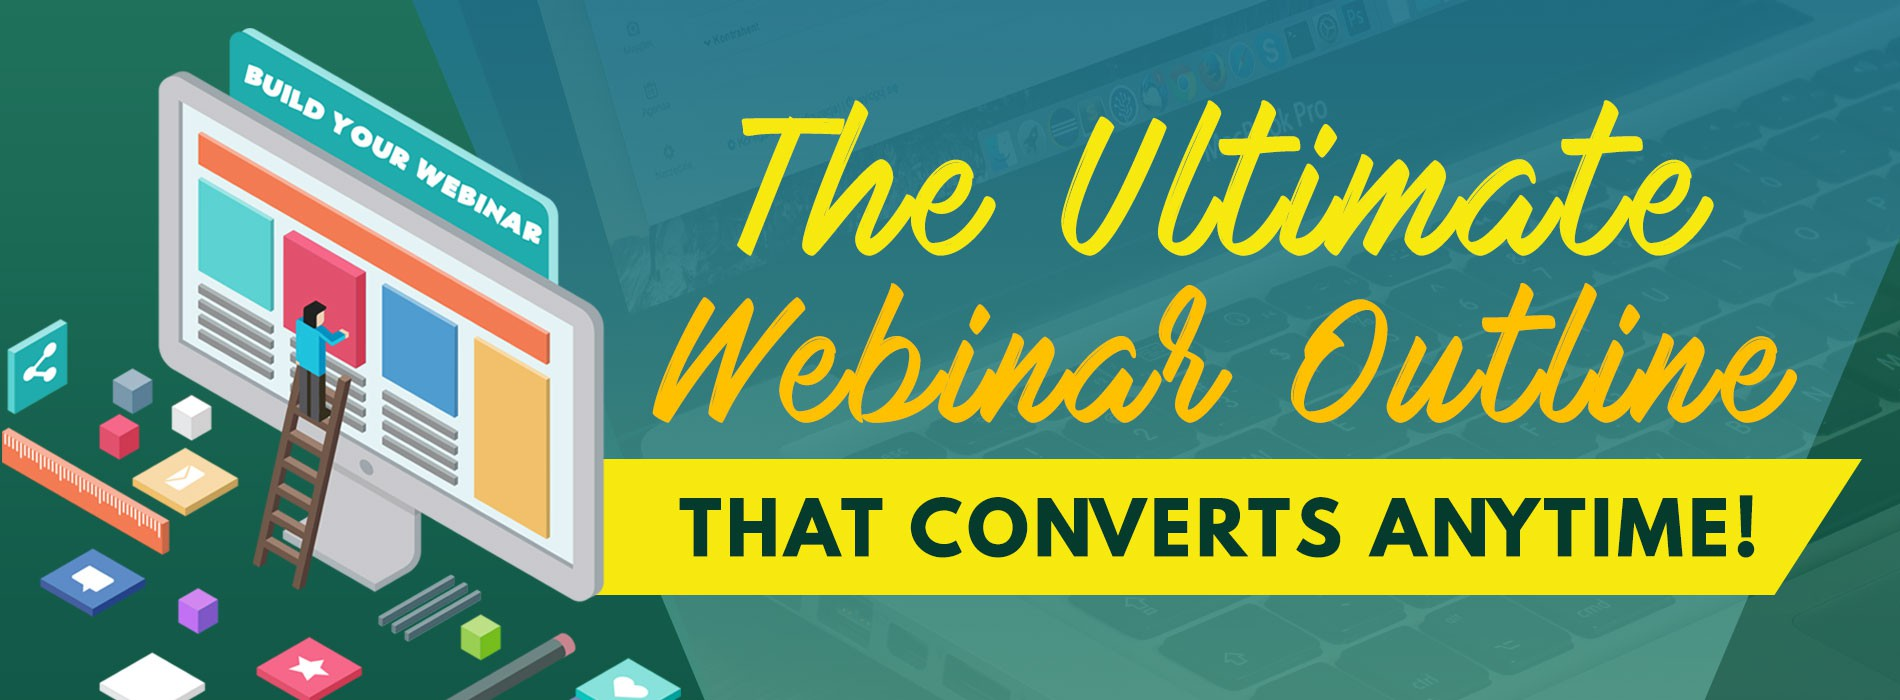 1900 x 700 Product Banner For The Ultimate Webinar Outline That Converts Everytime!